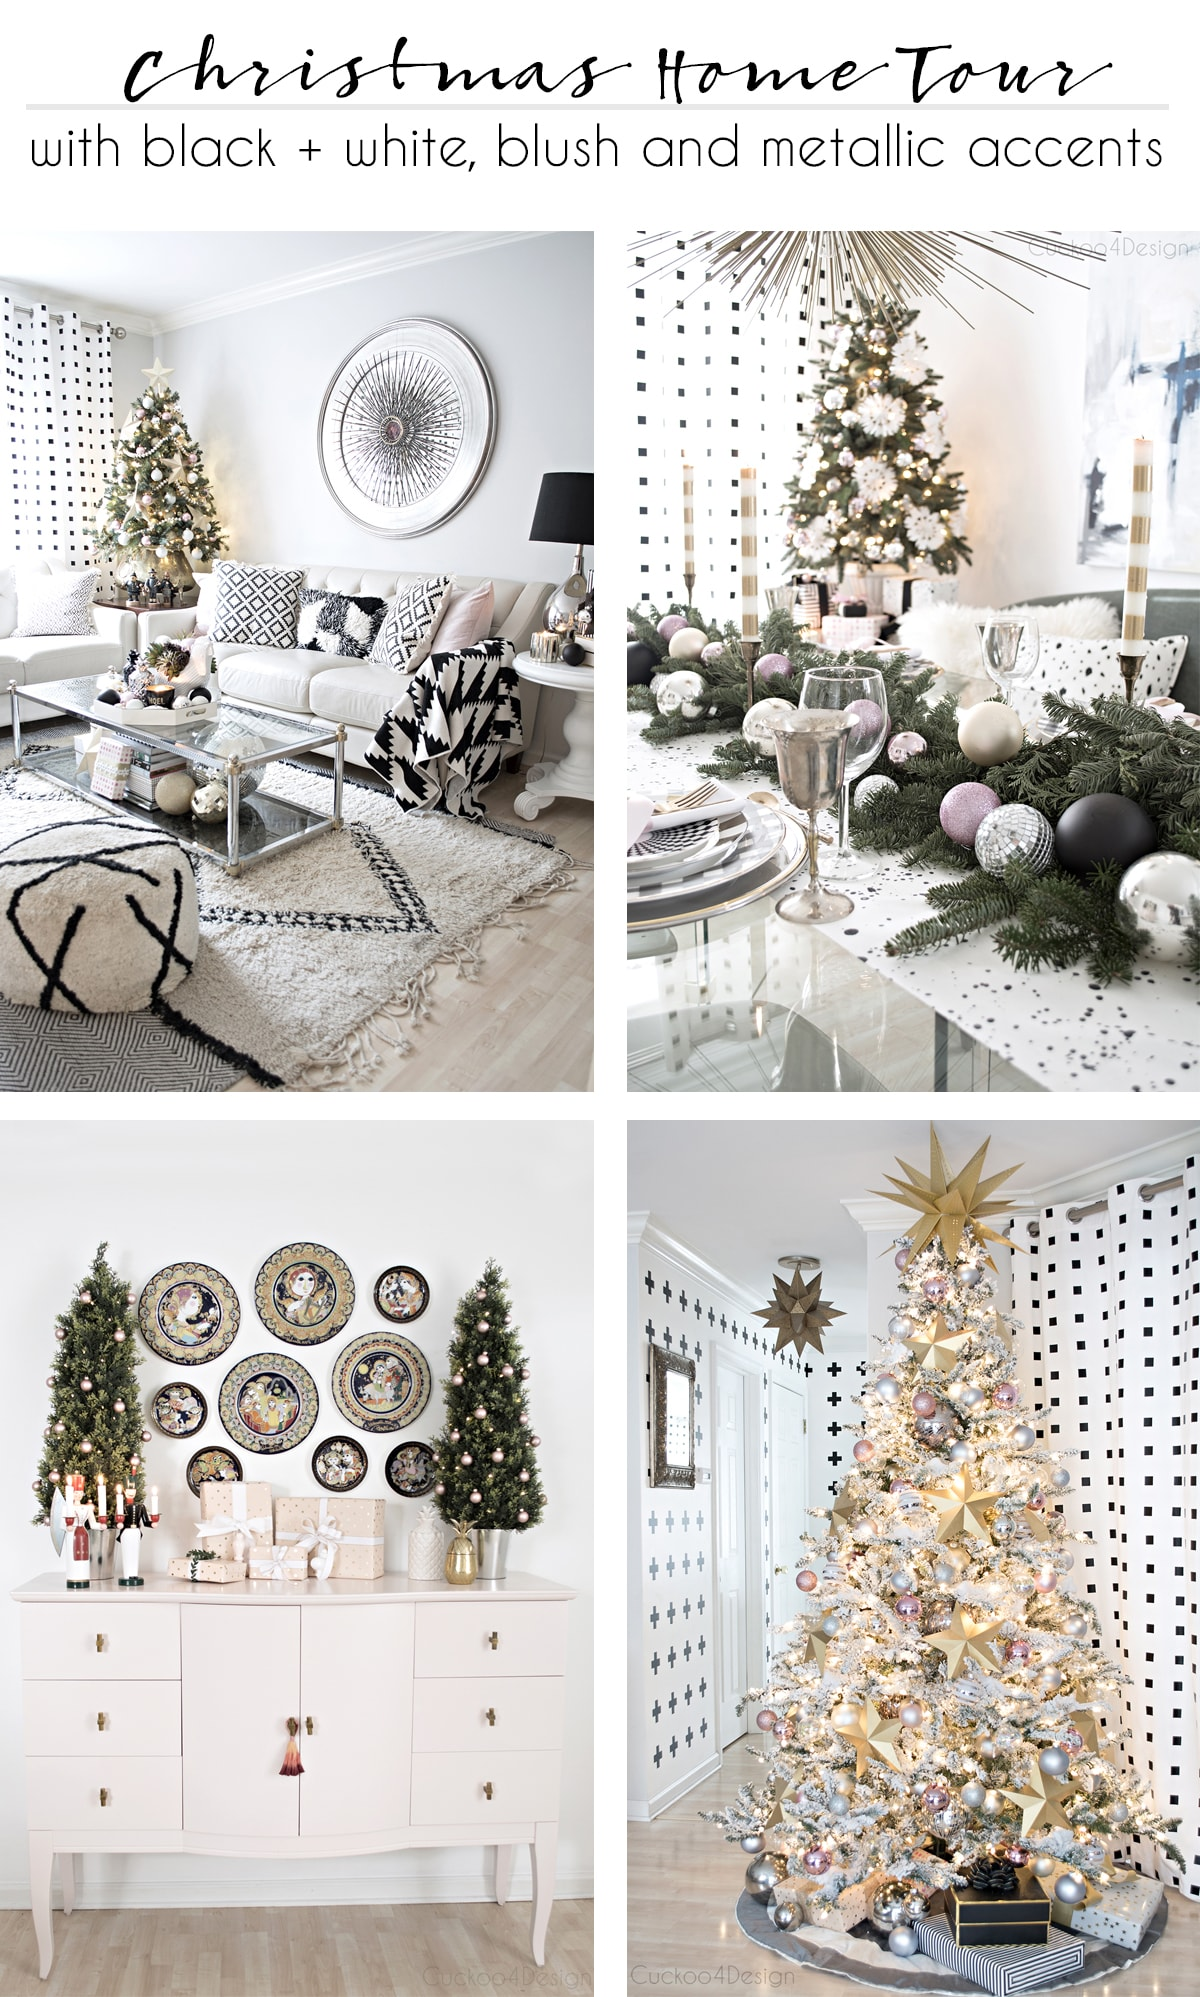 Better Homes and Gardens Christmas Ideas Home Tour | Cuckoo4Design